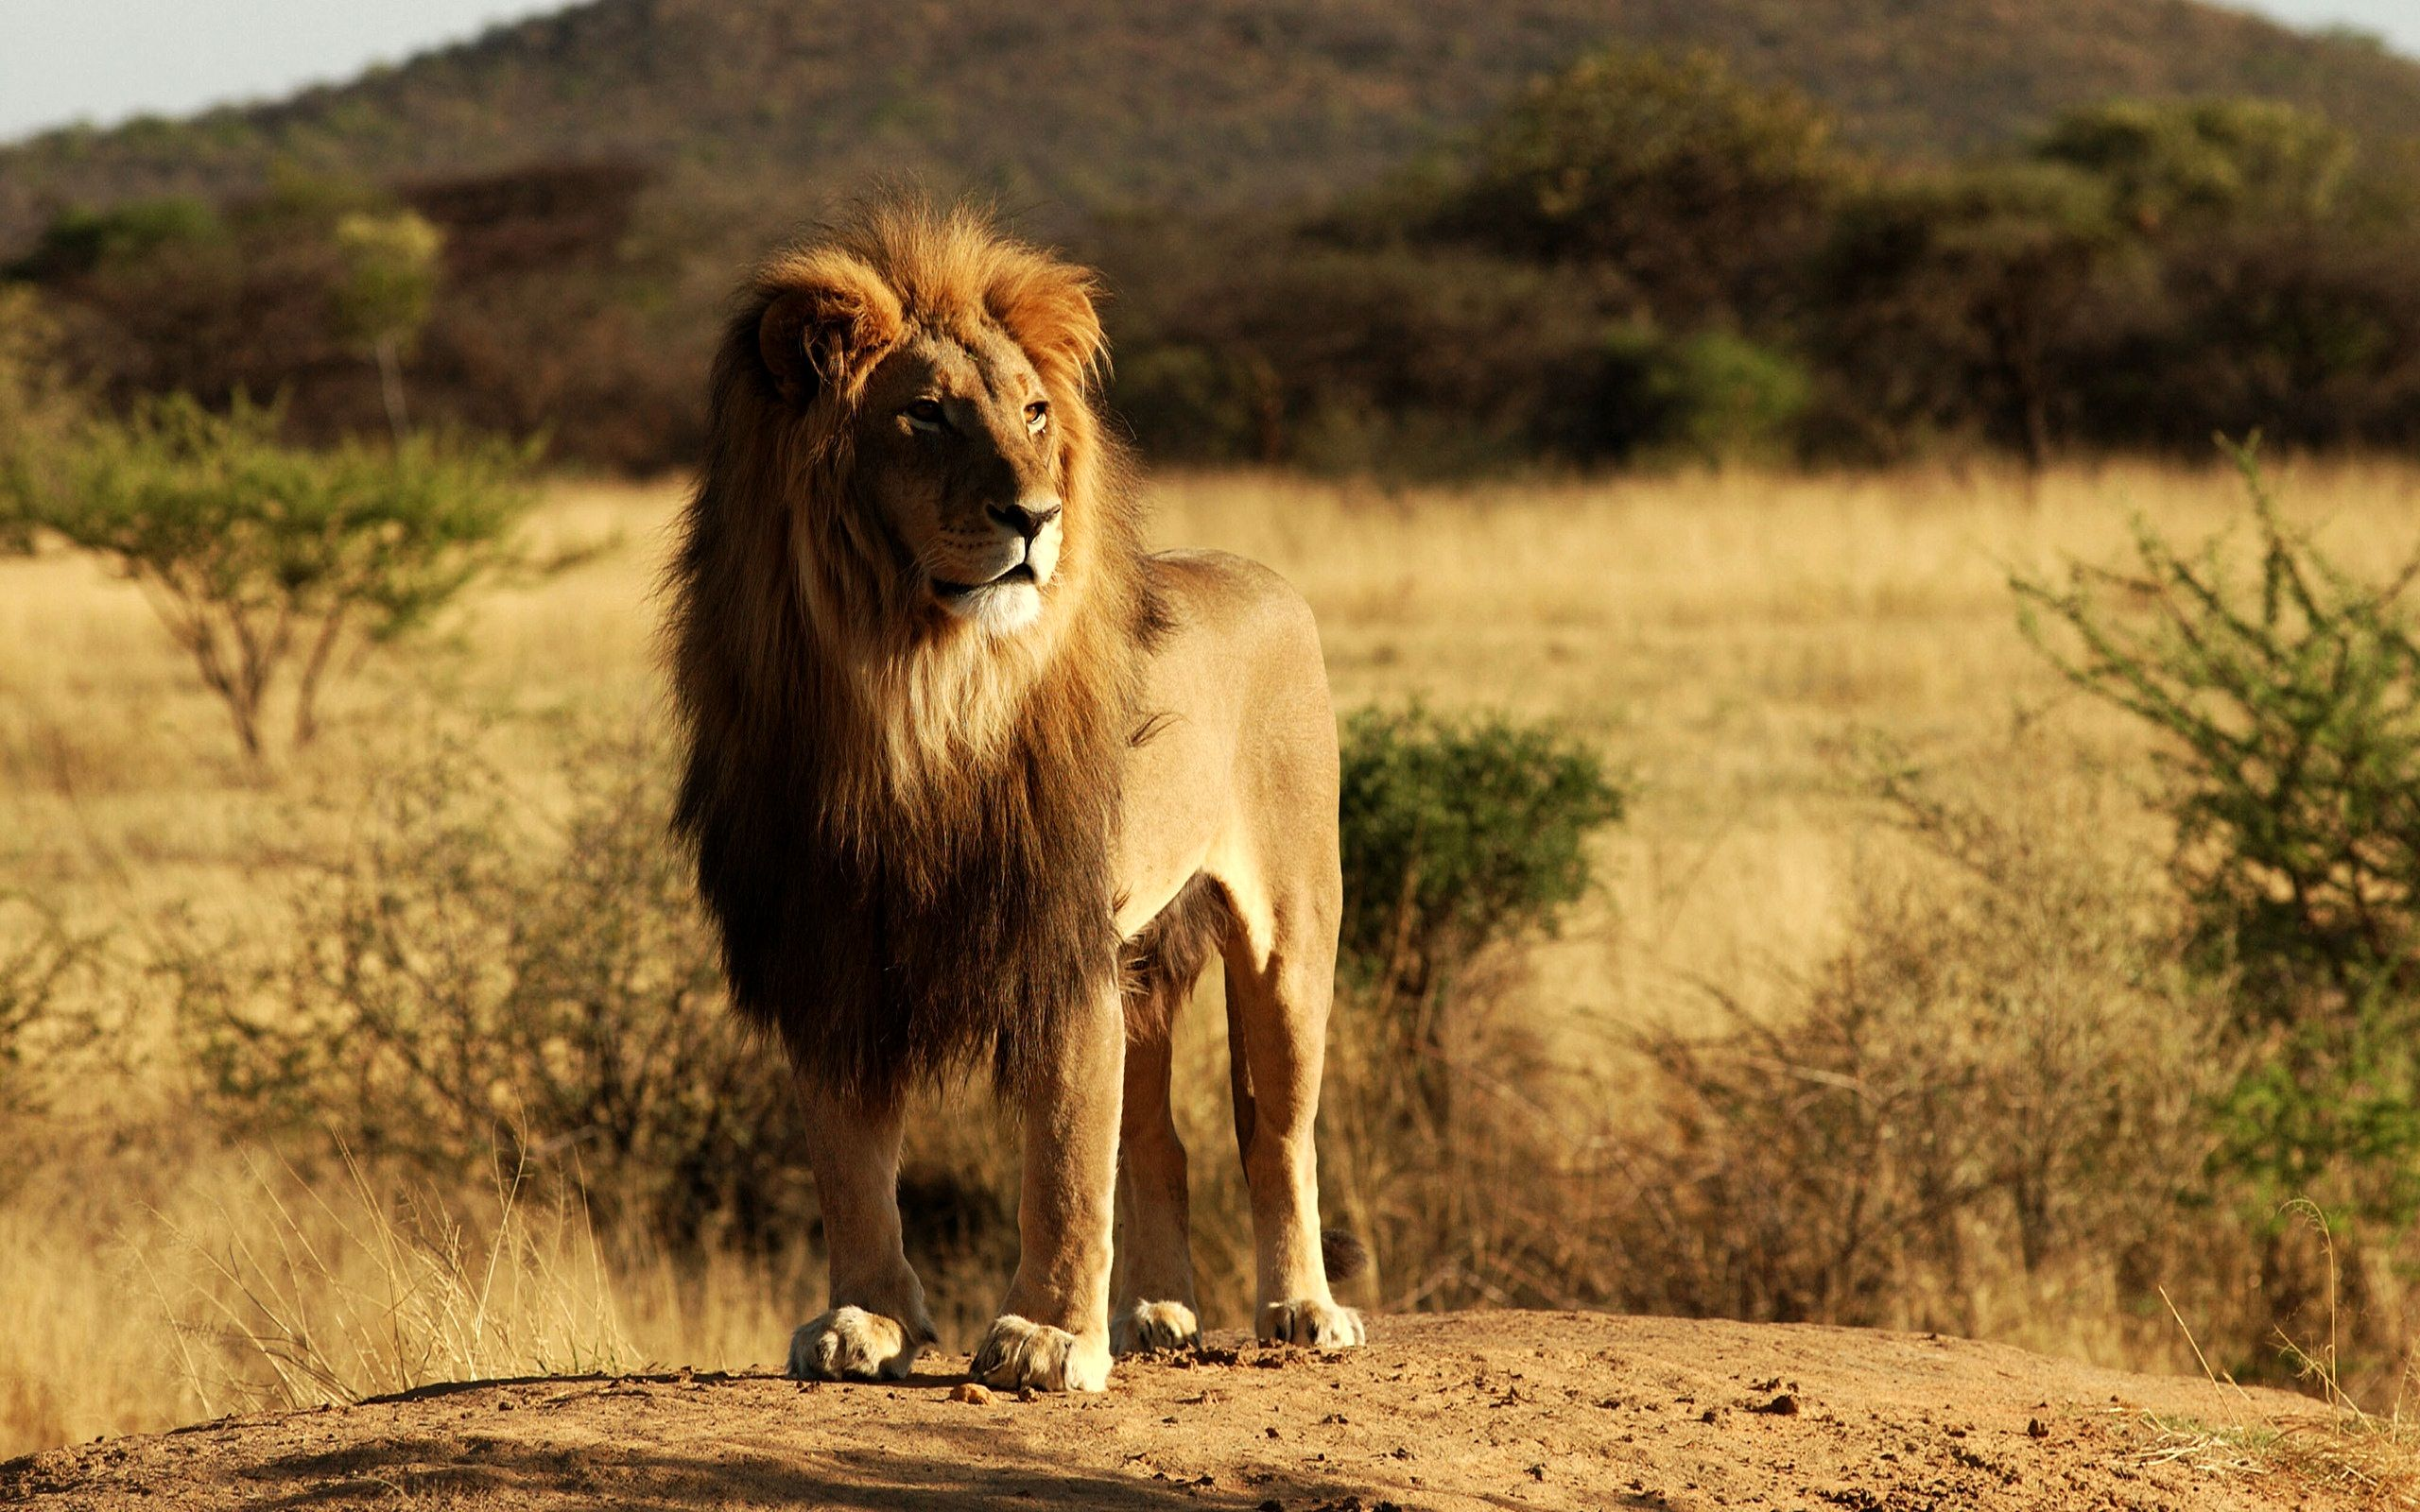 Pin By Hd Wallpapers On Hd Wallpapers Pinterest Lion Lion